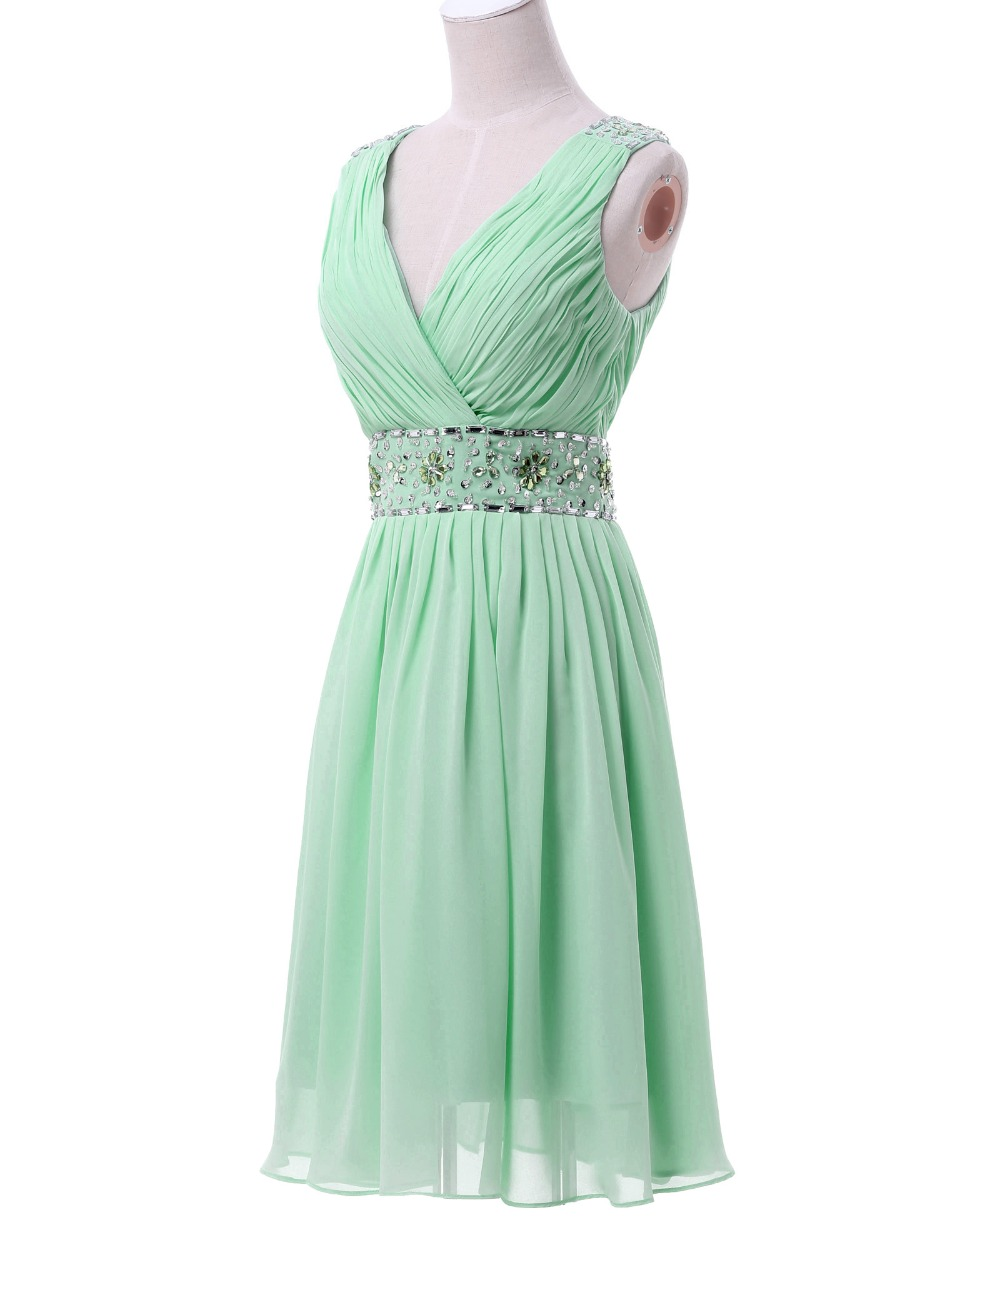 Aliexpress buy real picture chiffon mint green short aliexpress buy real picture chiffon mint green short bridesmaid dresses knee length v neck prom party dress beaded and sequins cl6104 from reliable ombrellifo Images